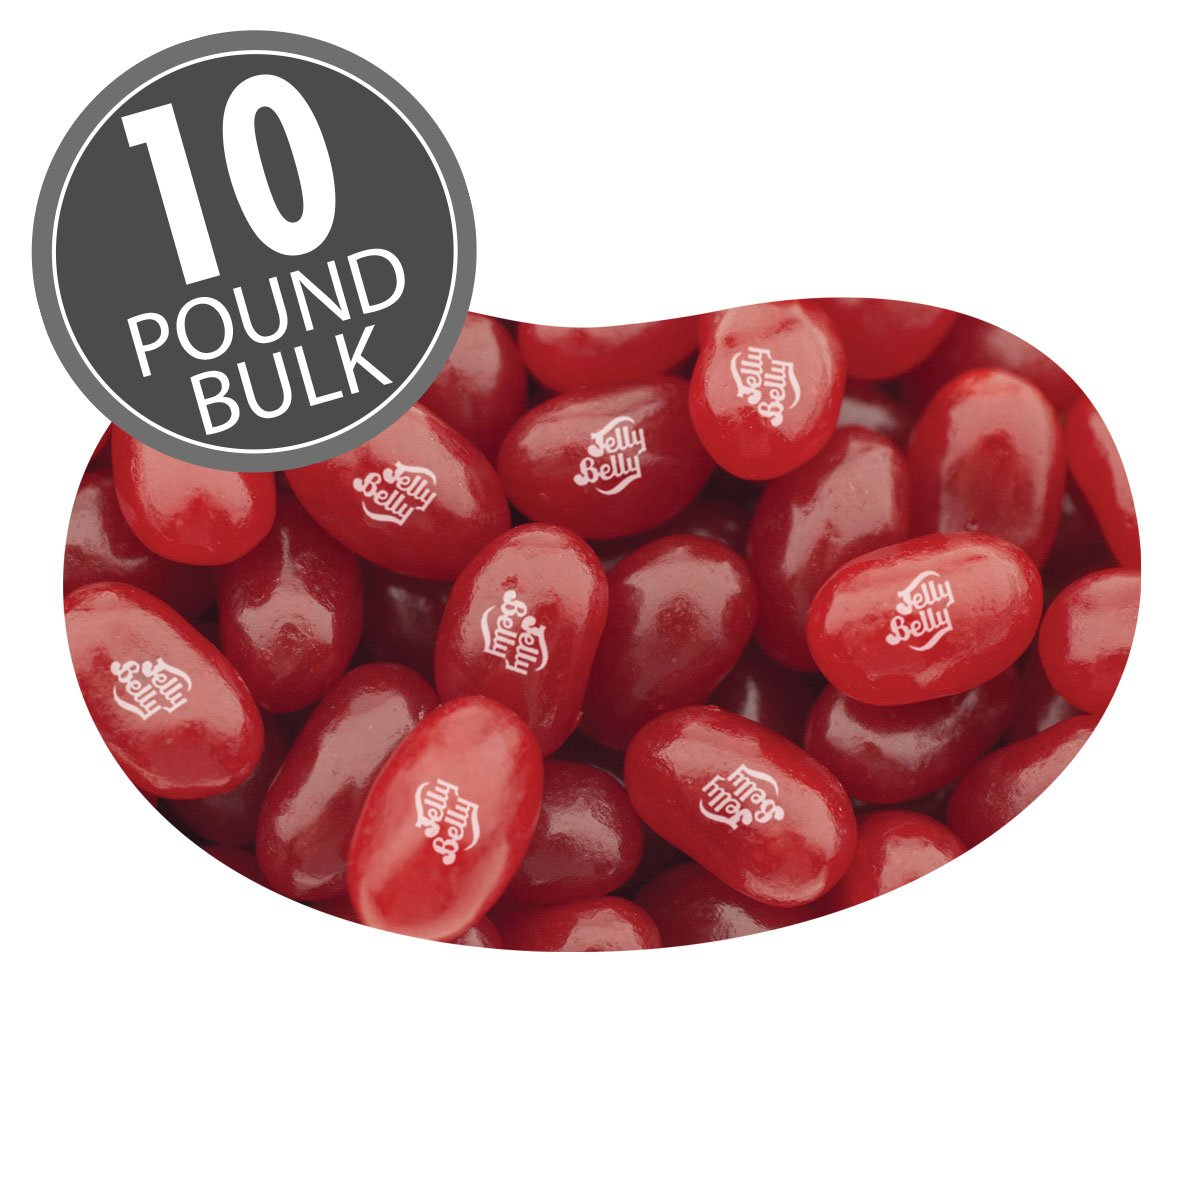 Jelly Belly Cranberry Sauce Jelly Belly - 10 lb Bulk Case - Official, Genuine, Straight from the Source by Jelly Belly